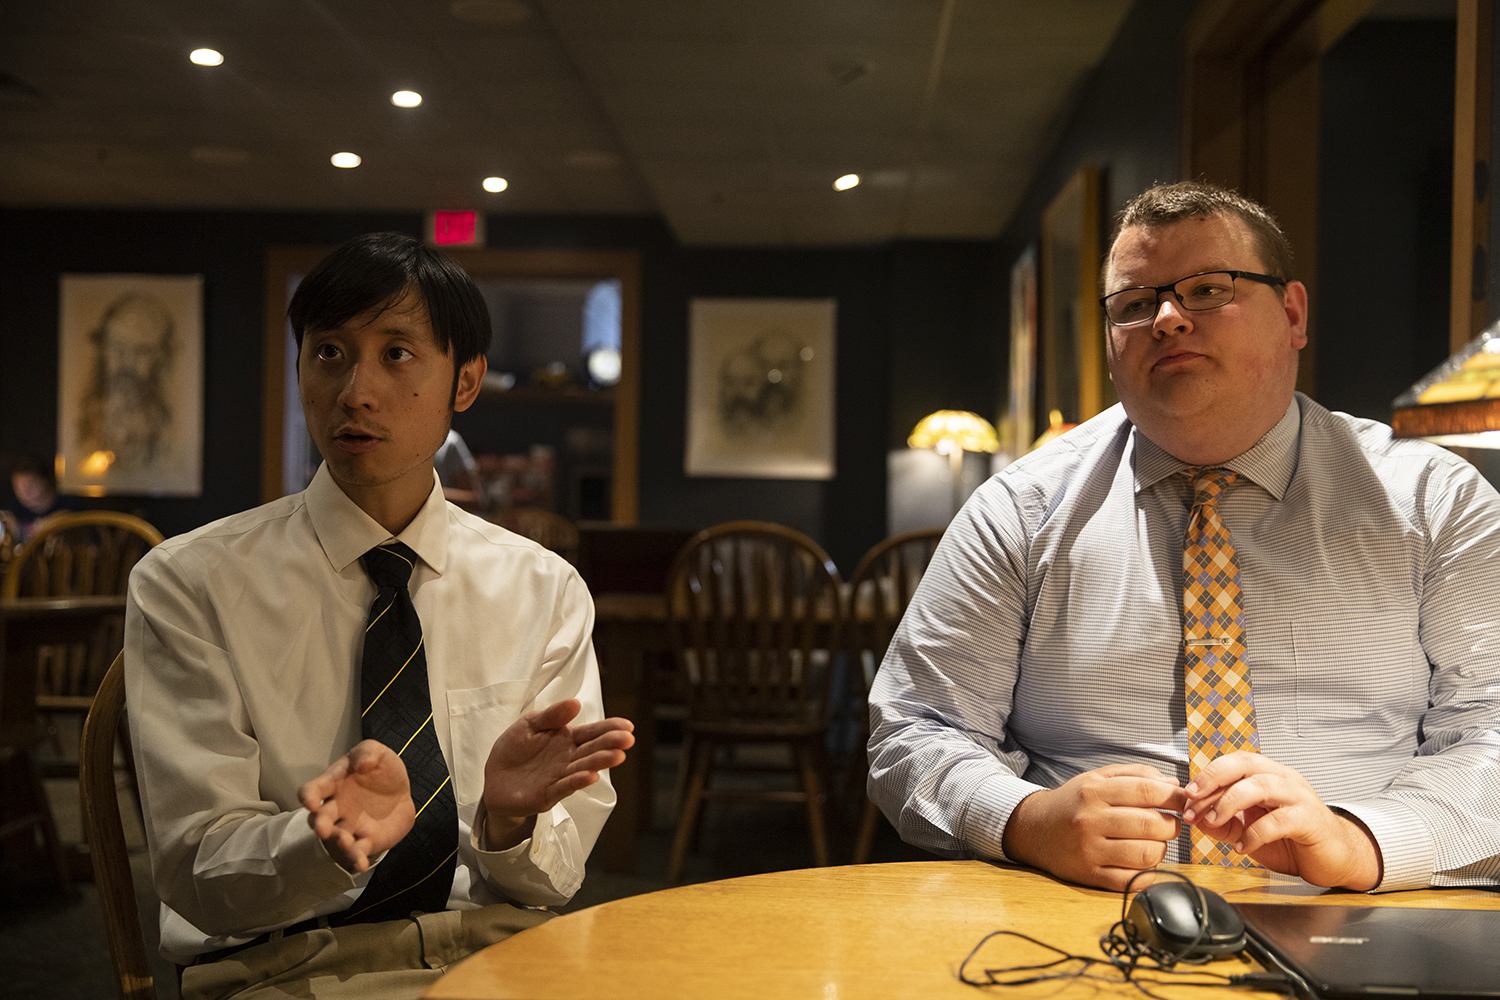 GPSG Vice President Thomas Pak and President Dexter Golinghorst sit for an interview at Java House on Monday, August 19, 2019.